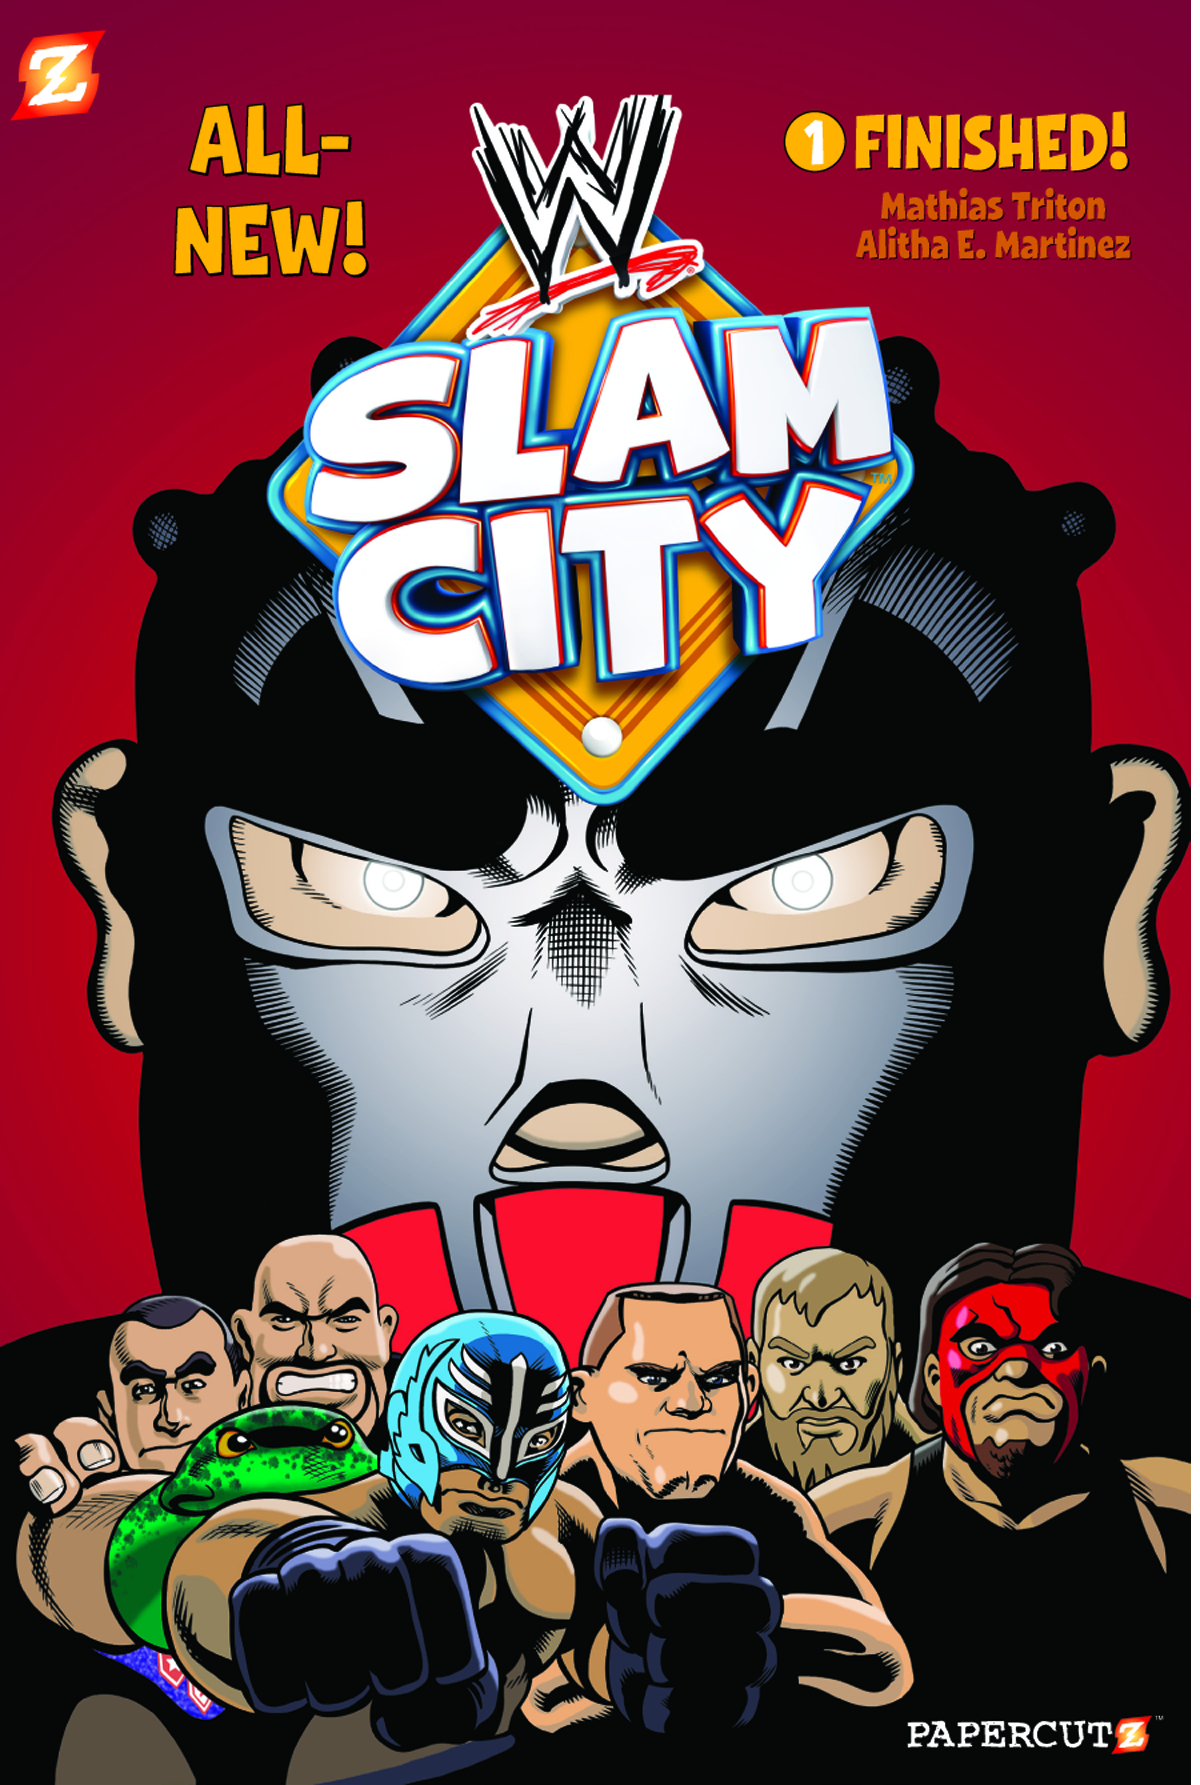 WWE SLAM CITY HC VOL 01 FINISHED